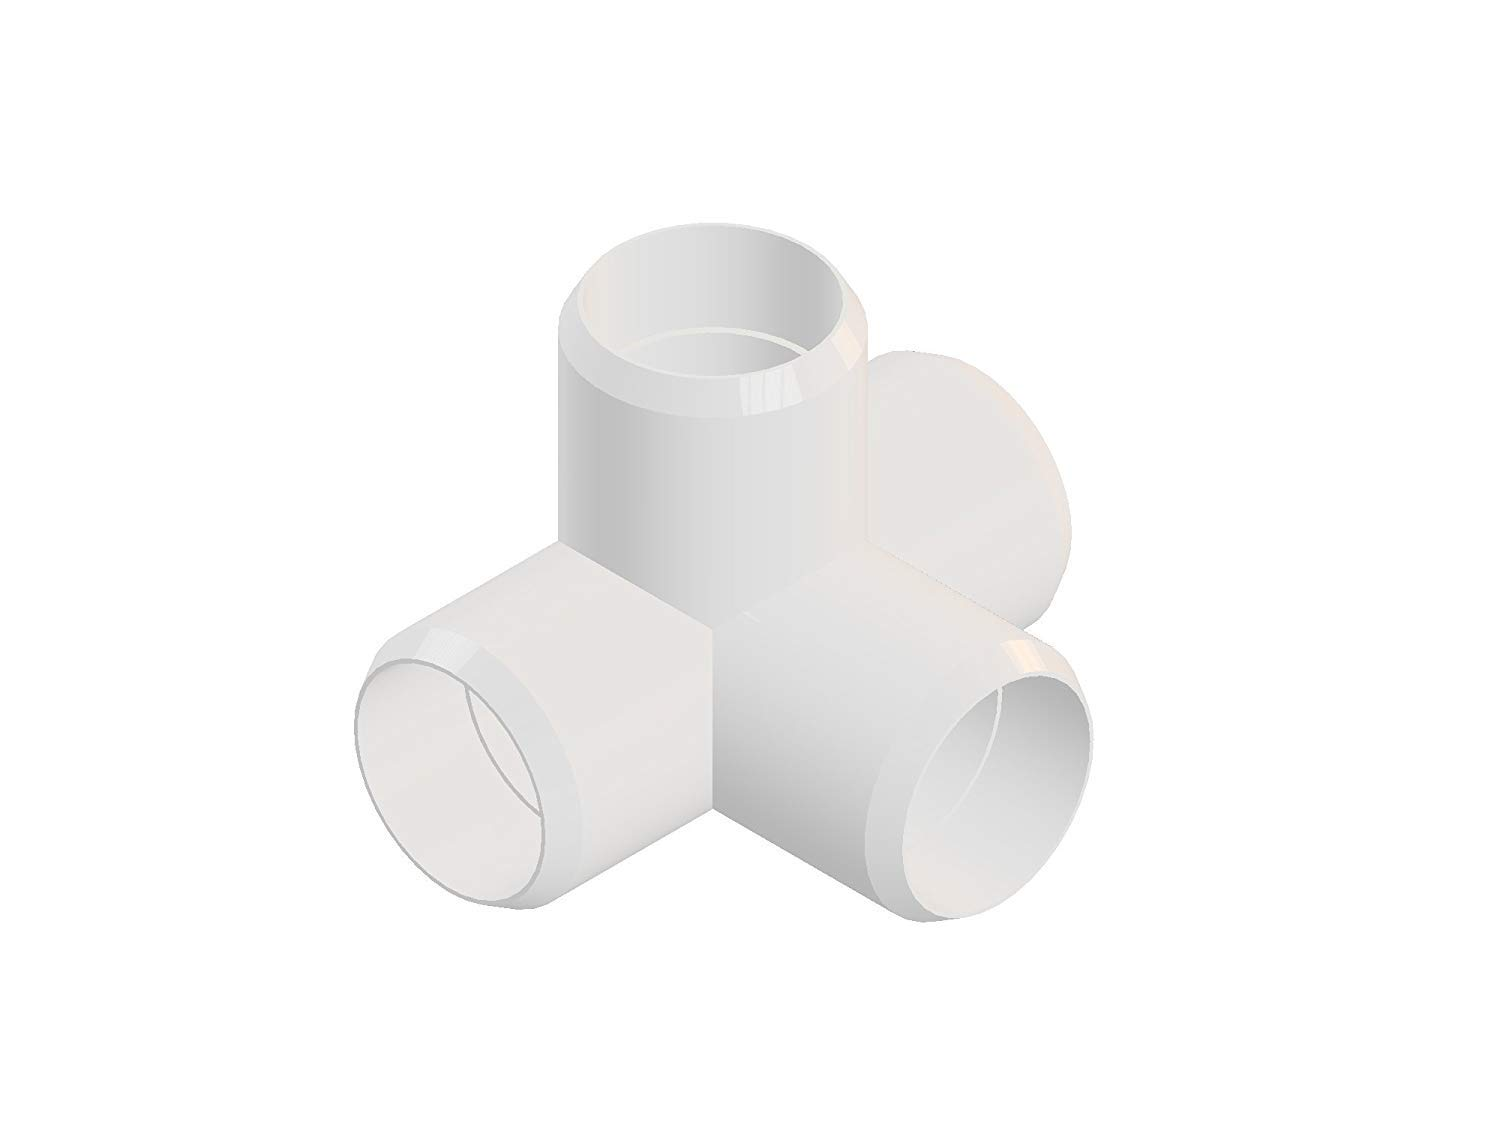 Sustainable Village - PVC Pipe Fittings for Building Furniture and Cool Structures   (3/4 Inch, 4-Way Elbow, 16)